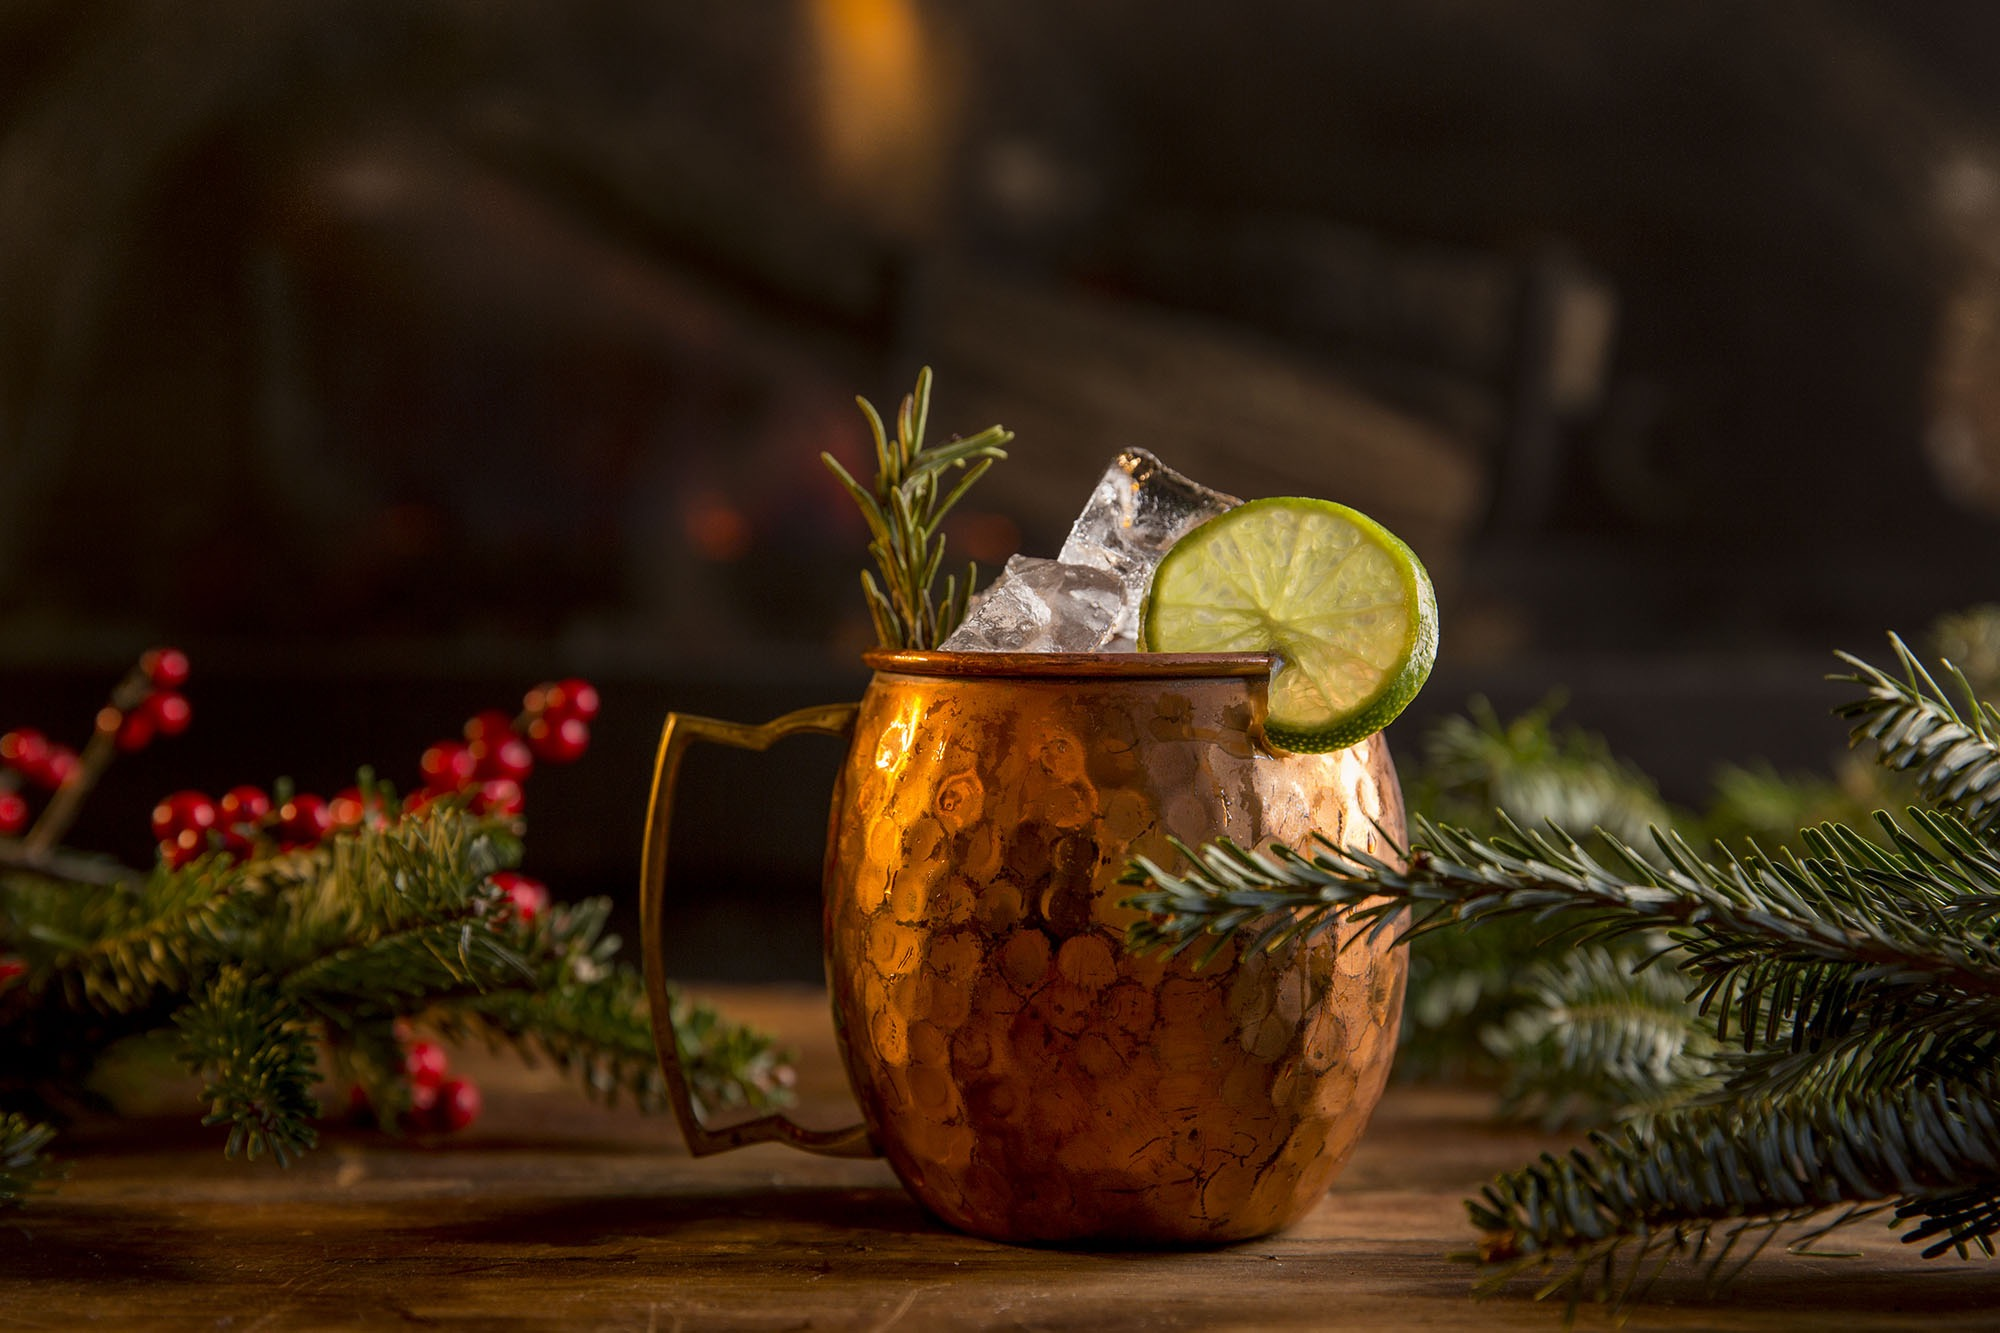 A Moscow mule drink in a festive setting.